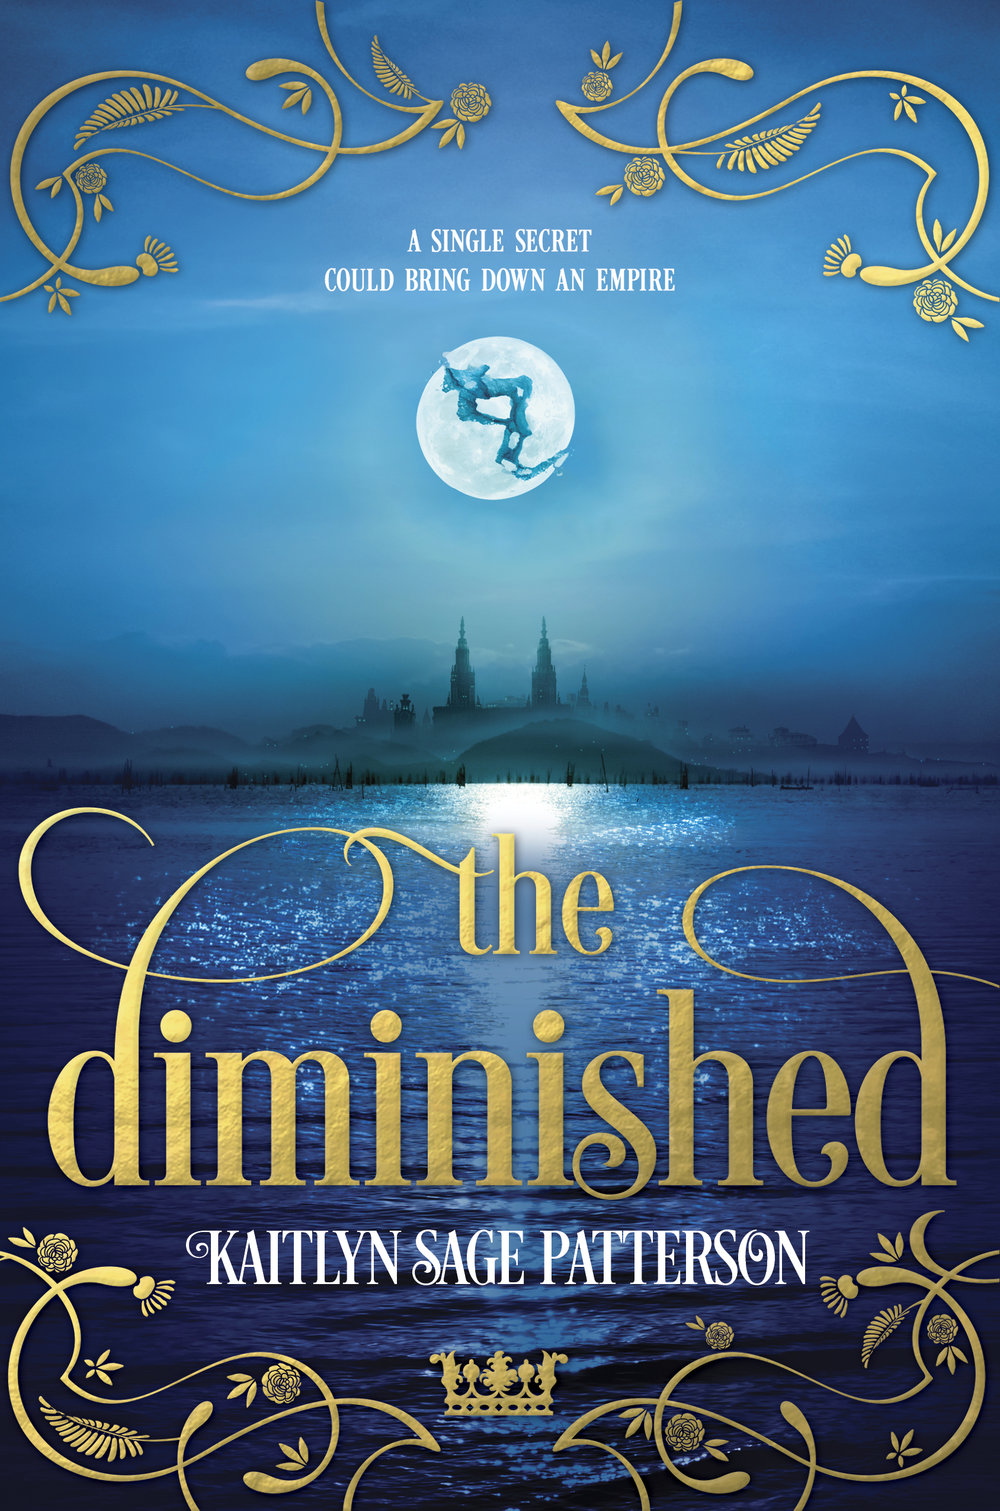 Happy book birthday to THE DIMINISHED by Kaitlyn Sage Patterson! - In the Alskad Empire, nearly all are born with a twin, two halves to form one whole…yet some face the world alone.The singlebornA rare few are singleborn in each generation, and therefore given the right to rule by the gods and goddesses. Bo Trousillion is one of these few, born into the royal line and destined to rule. Though he has been chosen to succeed his great-aunt, Queen Runa, as the leader of the Alskad Empire, Bo has never felt equal to the grand future before him.The diminishedWhen one twin dies, the other usually follows, unable to face the world without their other half. Those who survive are considered diminished, doomed to succumb to the violent grief that inevitably destroys everyone whose twin has died. Such is the fate of Vi Abernathy, whose twin sister died in infancy. Raised by the anchorites of the temple after her family cast her off, Vi has spent her whole life scheming for a way to escape and live out what's left of her life in peace.As their sixteenth birthdays approach, Bo and Vi face very different futures—one a life of luxury as the heir to the throne, the other years of backbreaking work as a temple servant. But a long-held secret and the fate of the empire are destined to bring them together in a way they never could have imagined.